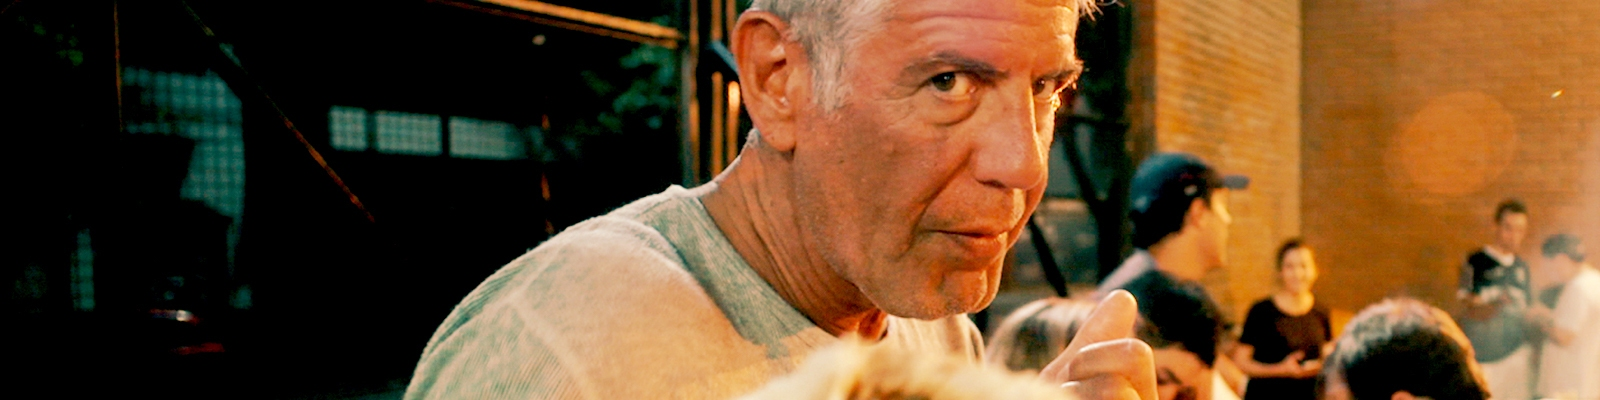 'Roadrunner' Sees Anthony Bourdain Chasing An Illusion, While We In Turn Chase The Illusion Of Anthony Bourdain